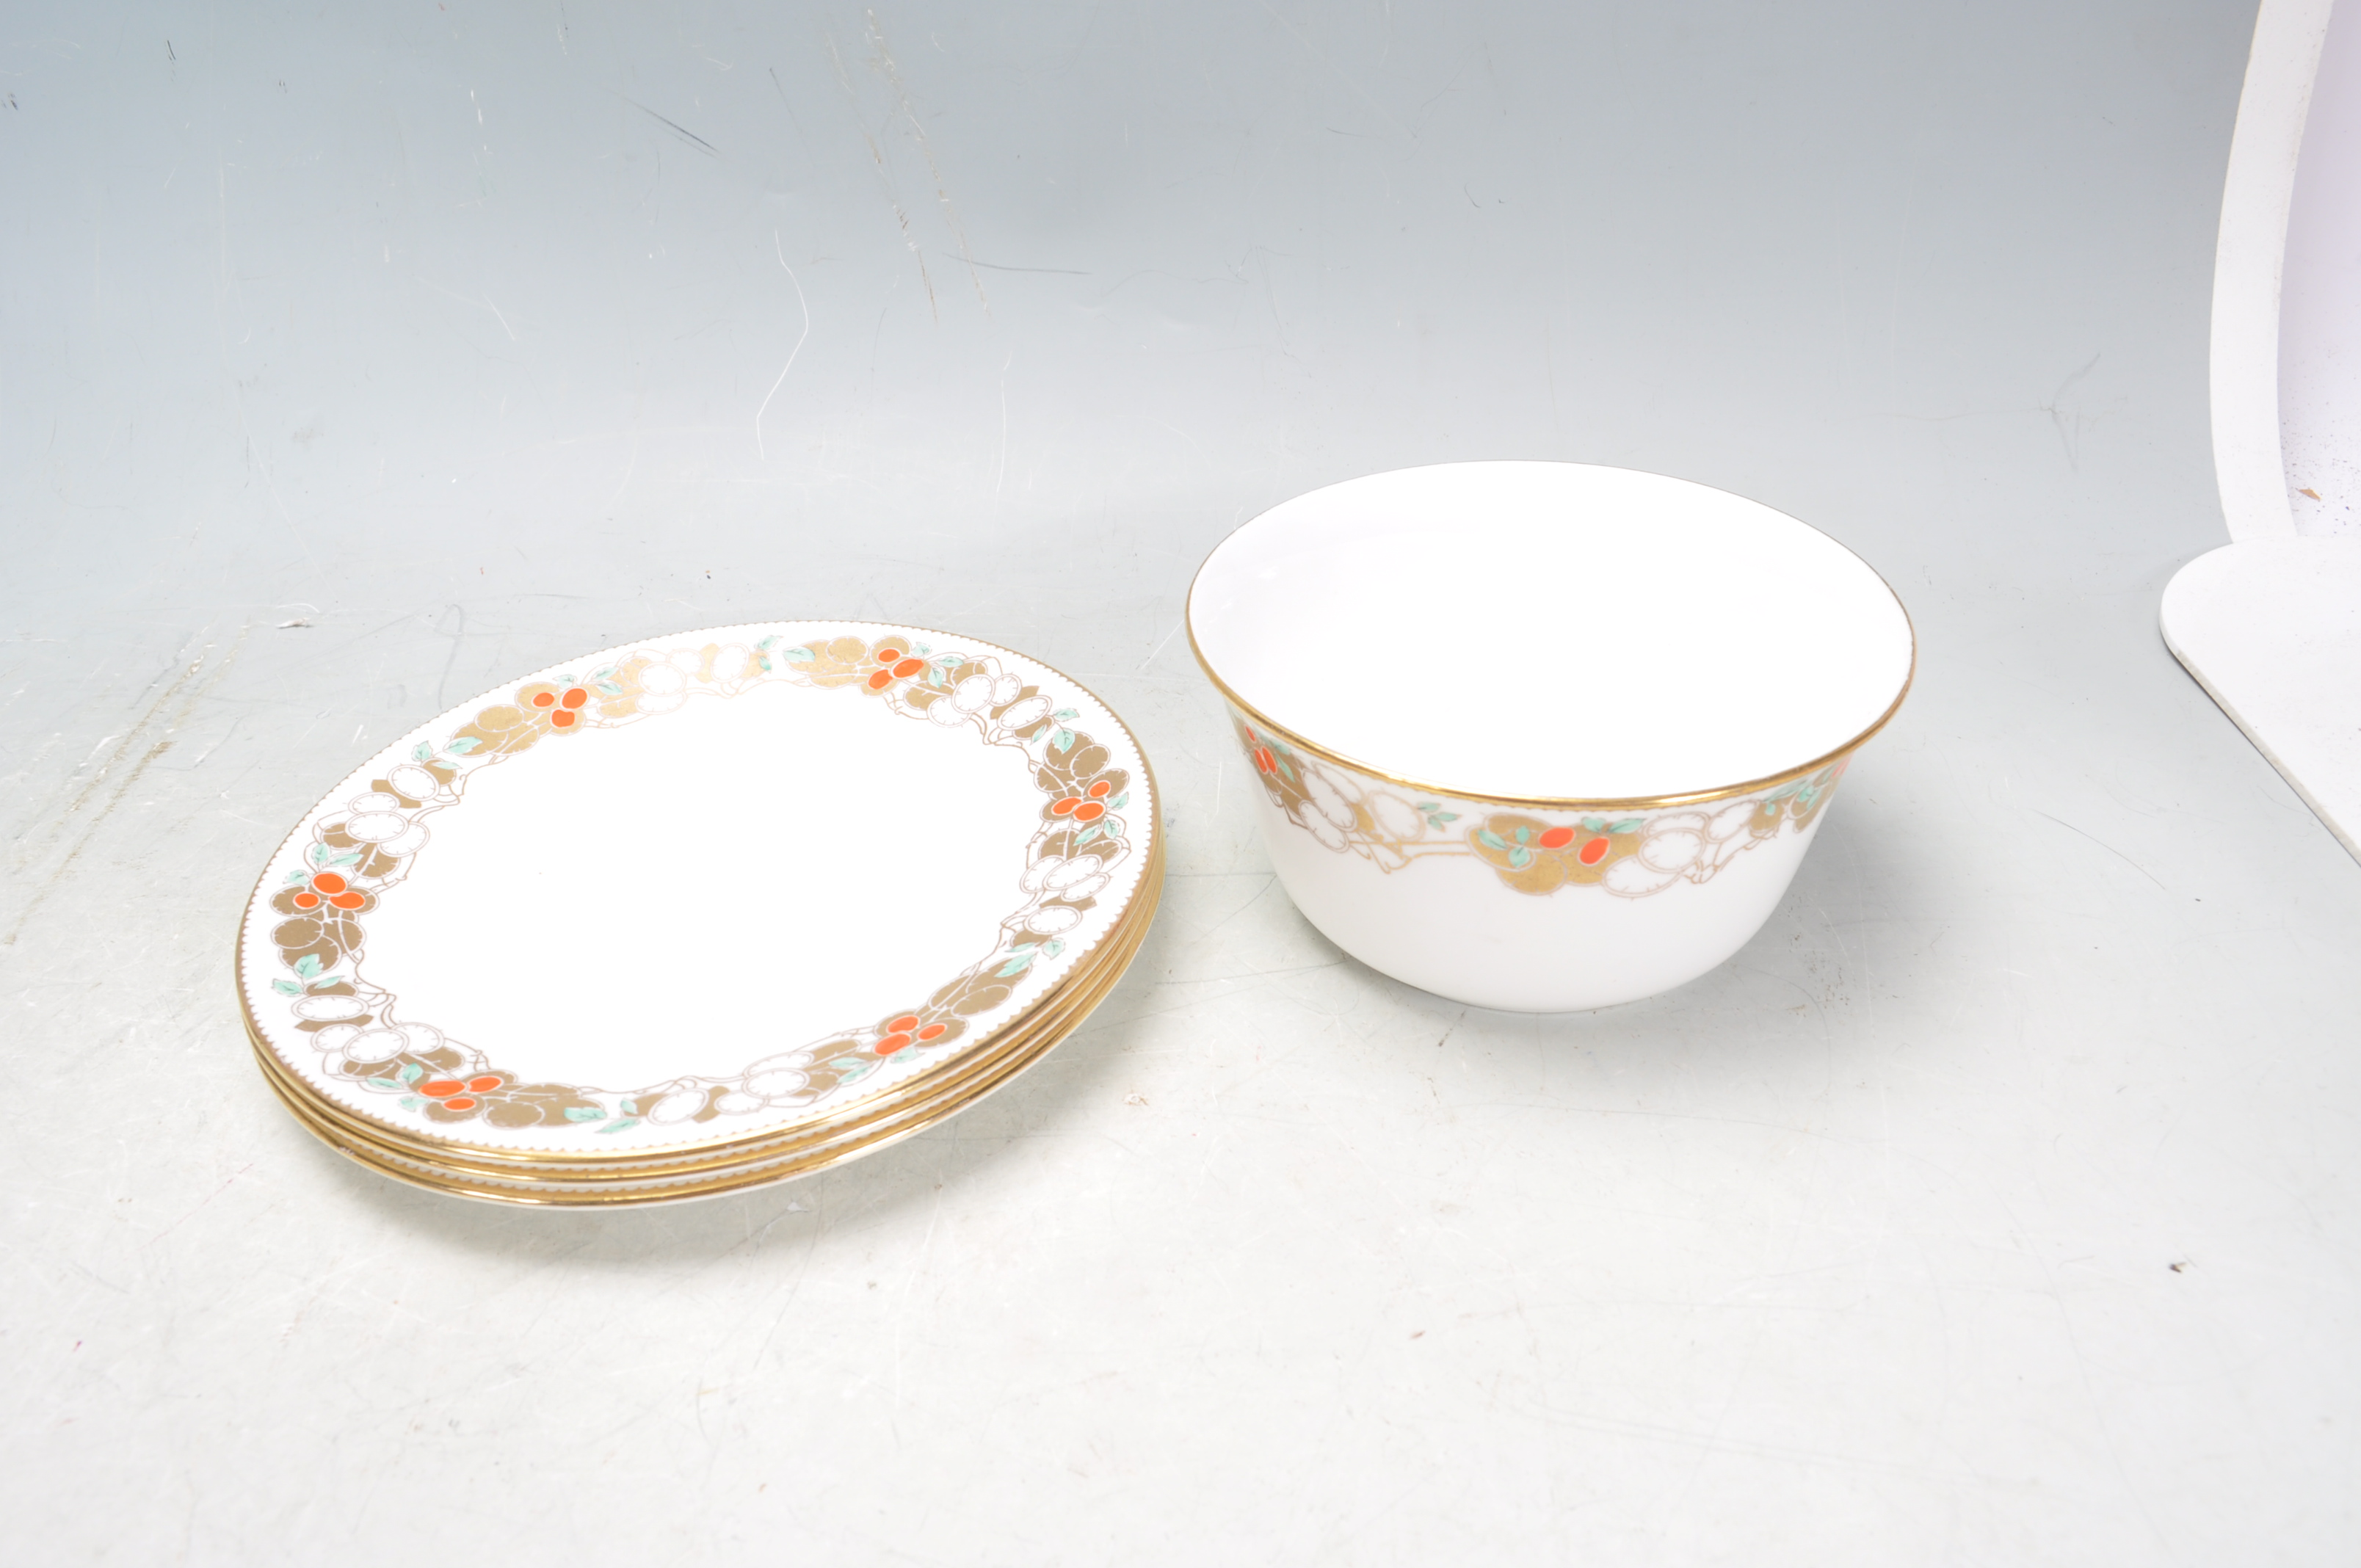 VINTAGE SHELLY TEA SET AND ADAMS PLATES - Image 7 of 14